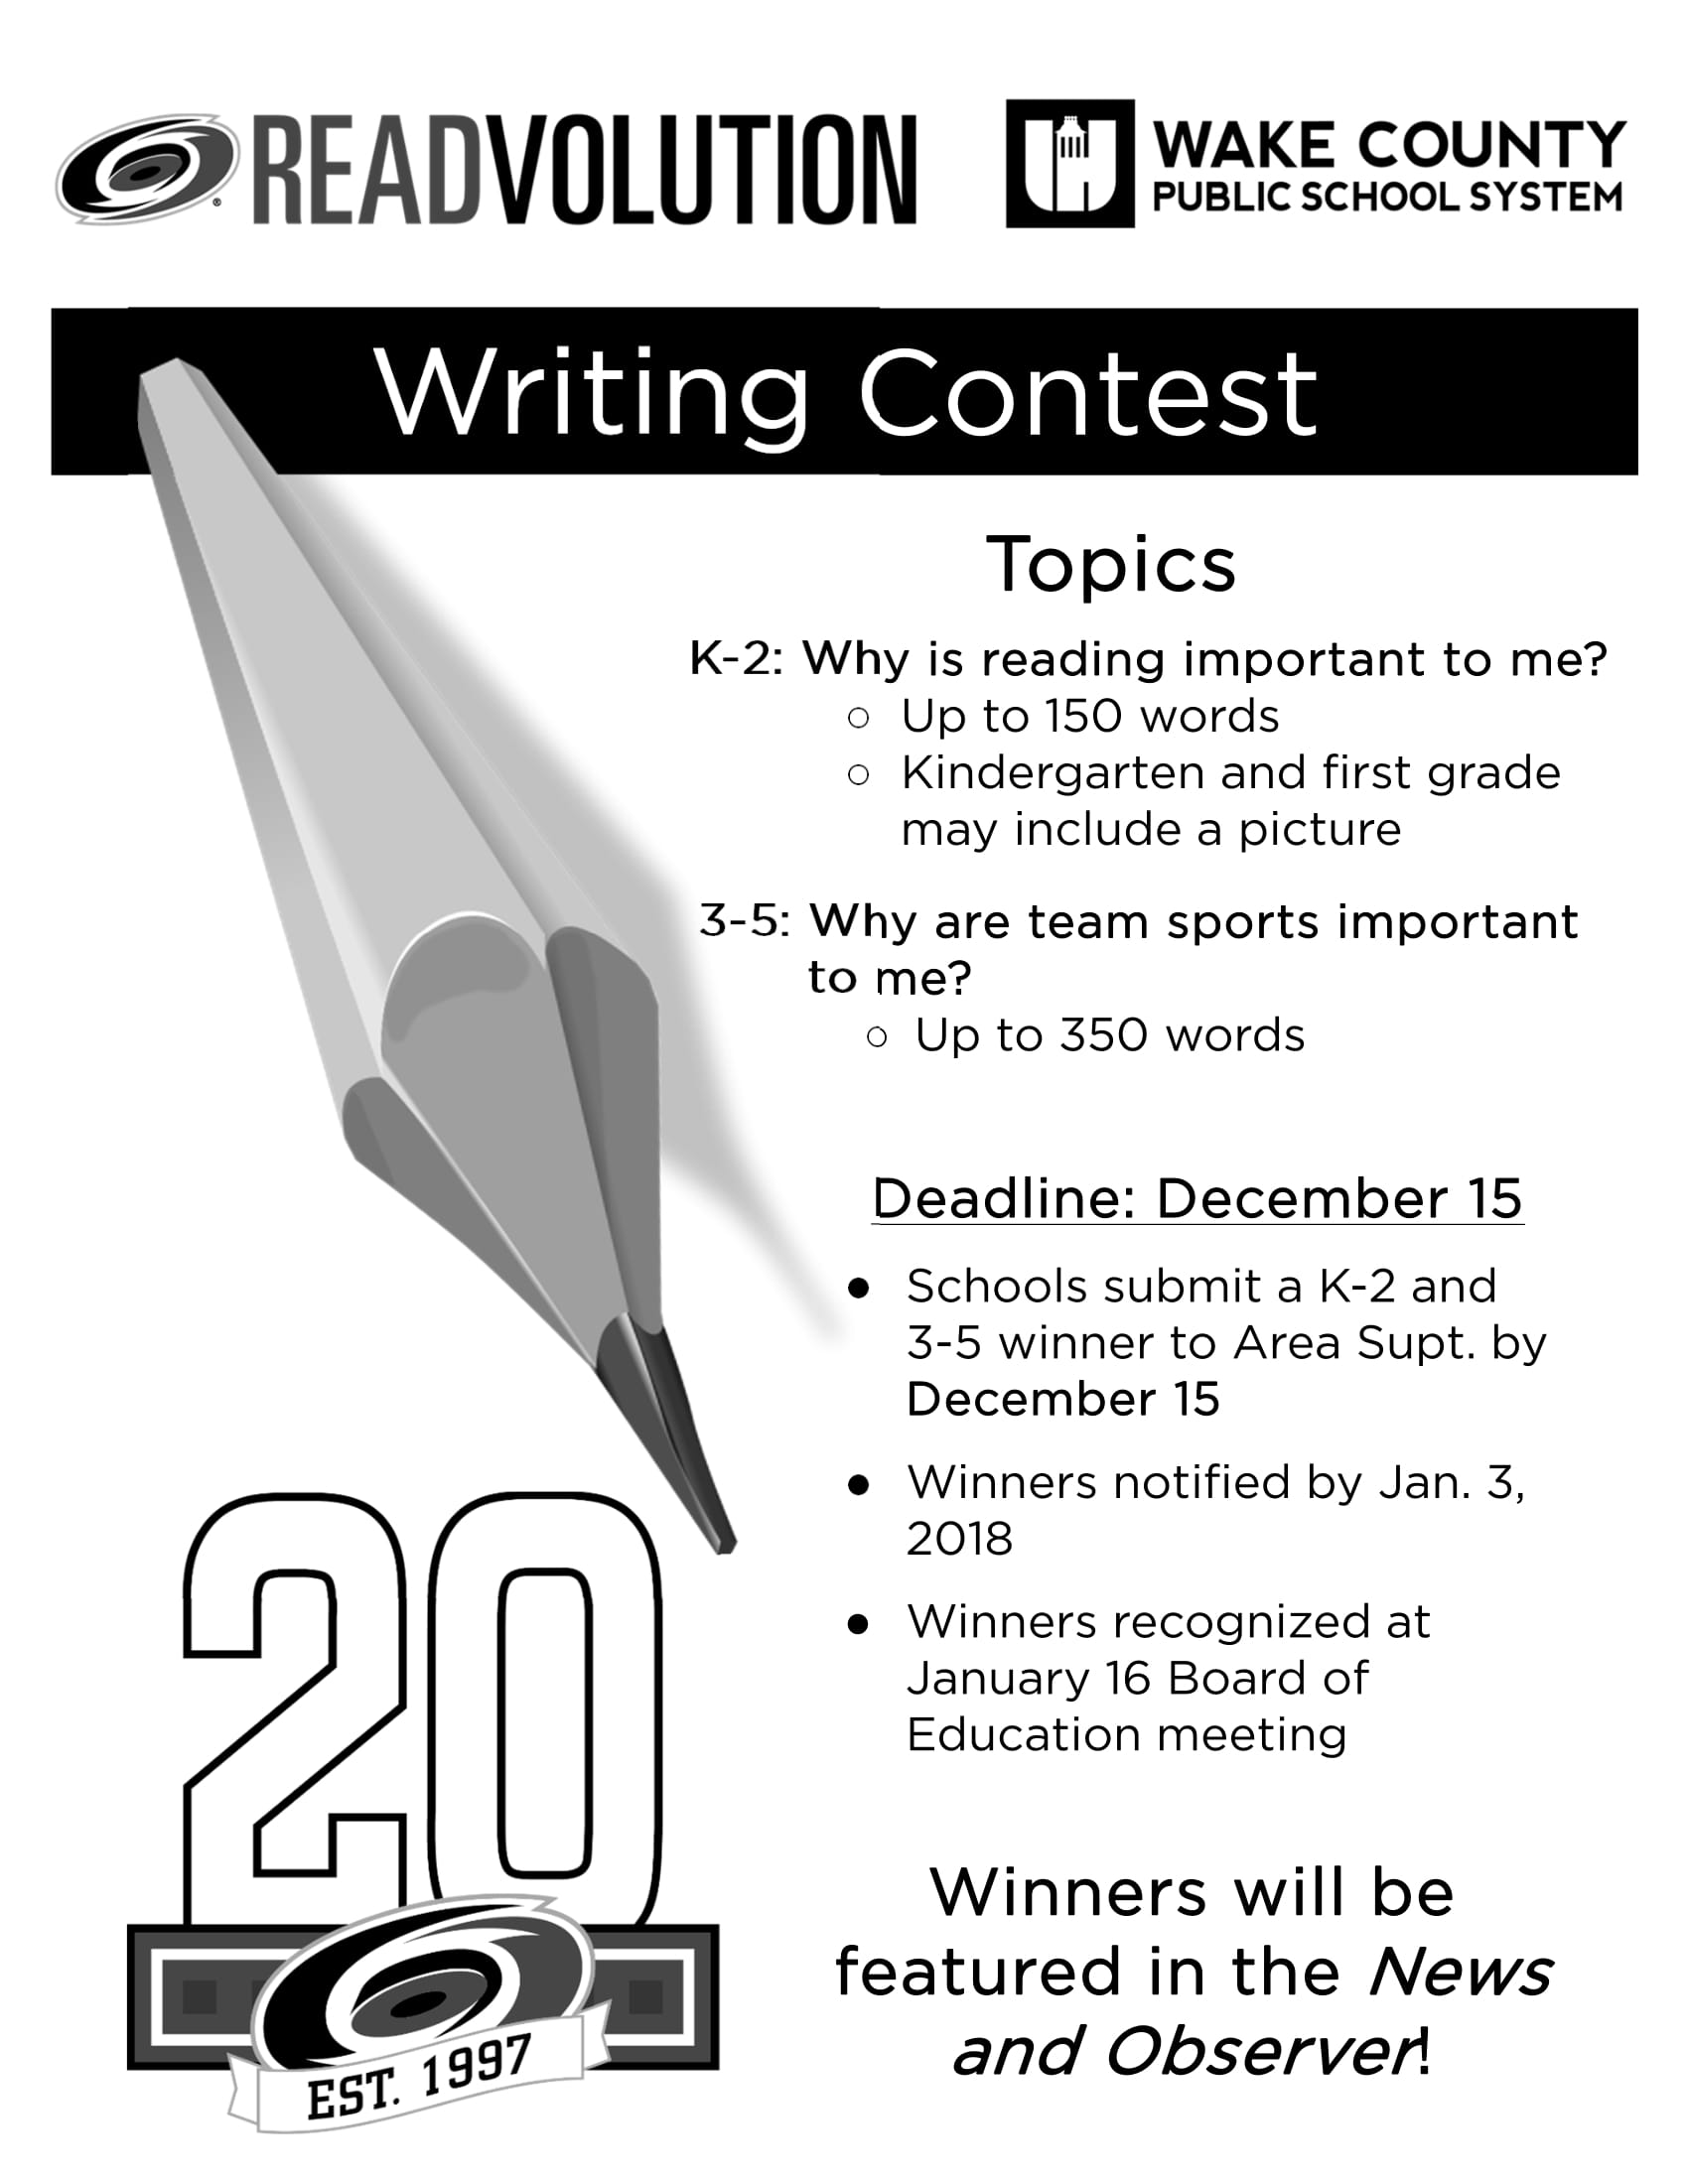 amateur writing contests Discover reputable writing contests available to fiction and non-fiction writers in 2018, including short stories, poetry, and essays vetted and updated weekly.